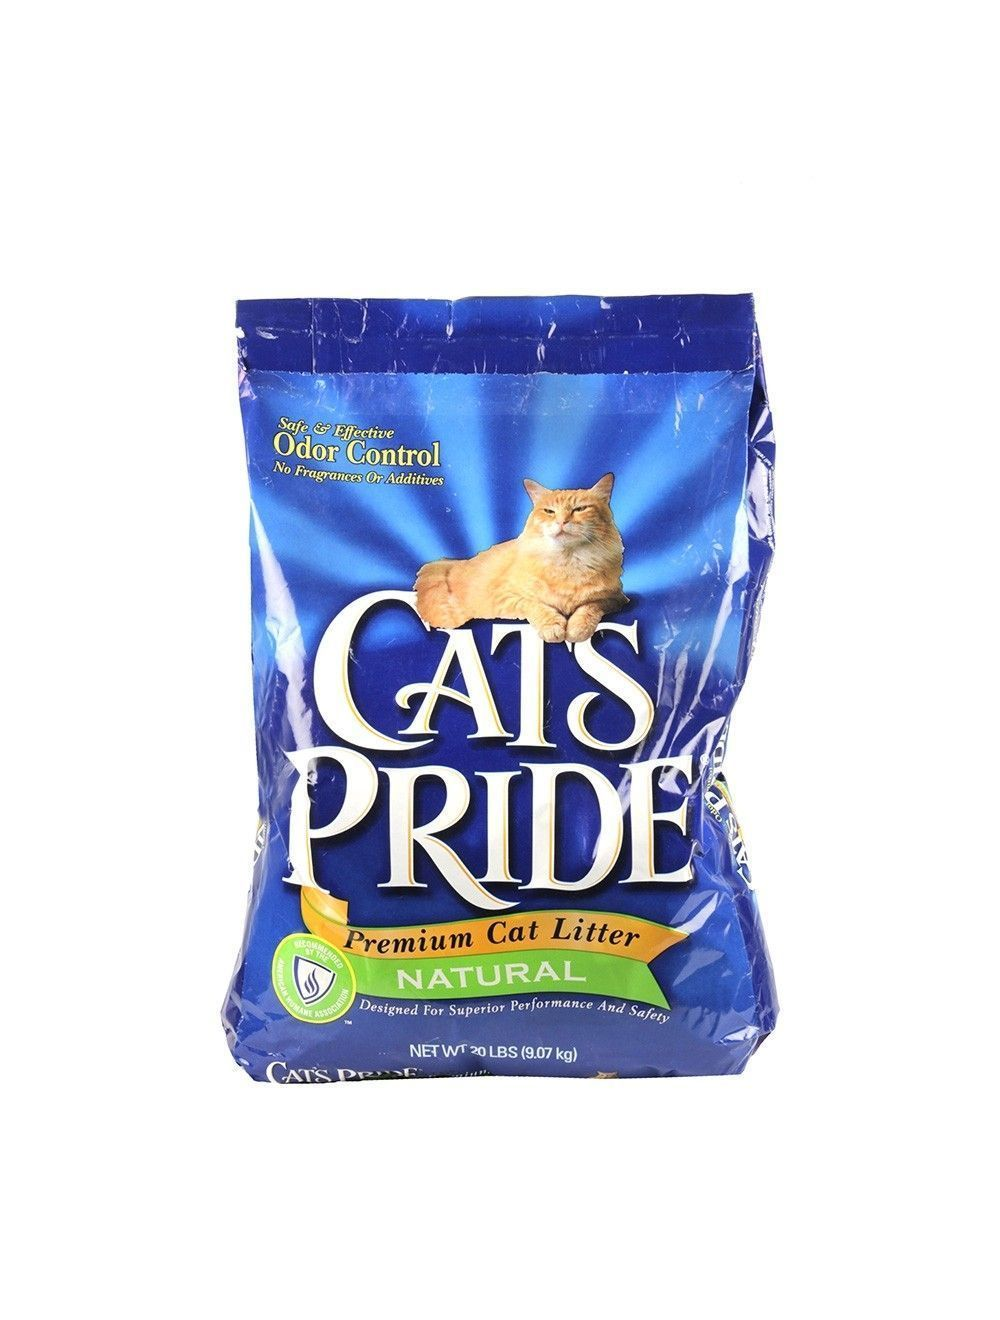 Cats Pride Premium Cat Litter Natural 9.1 Kg